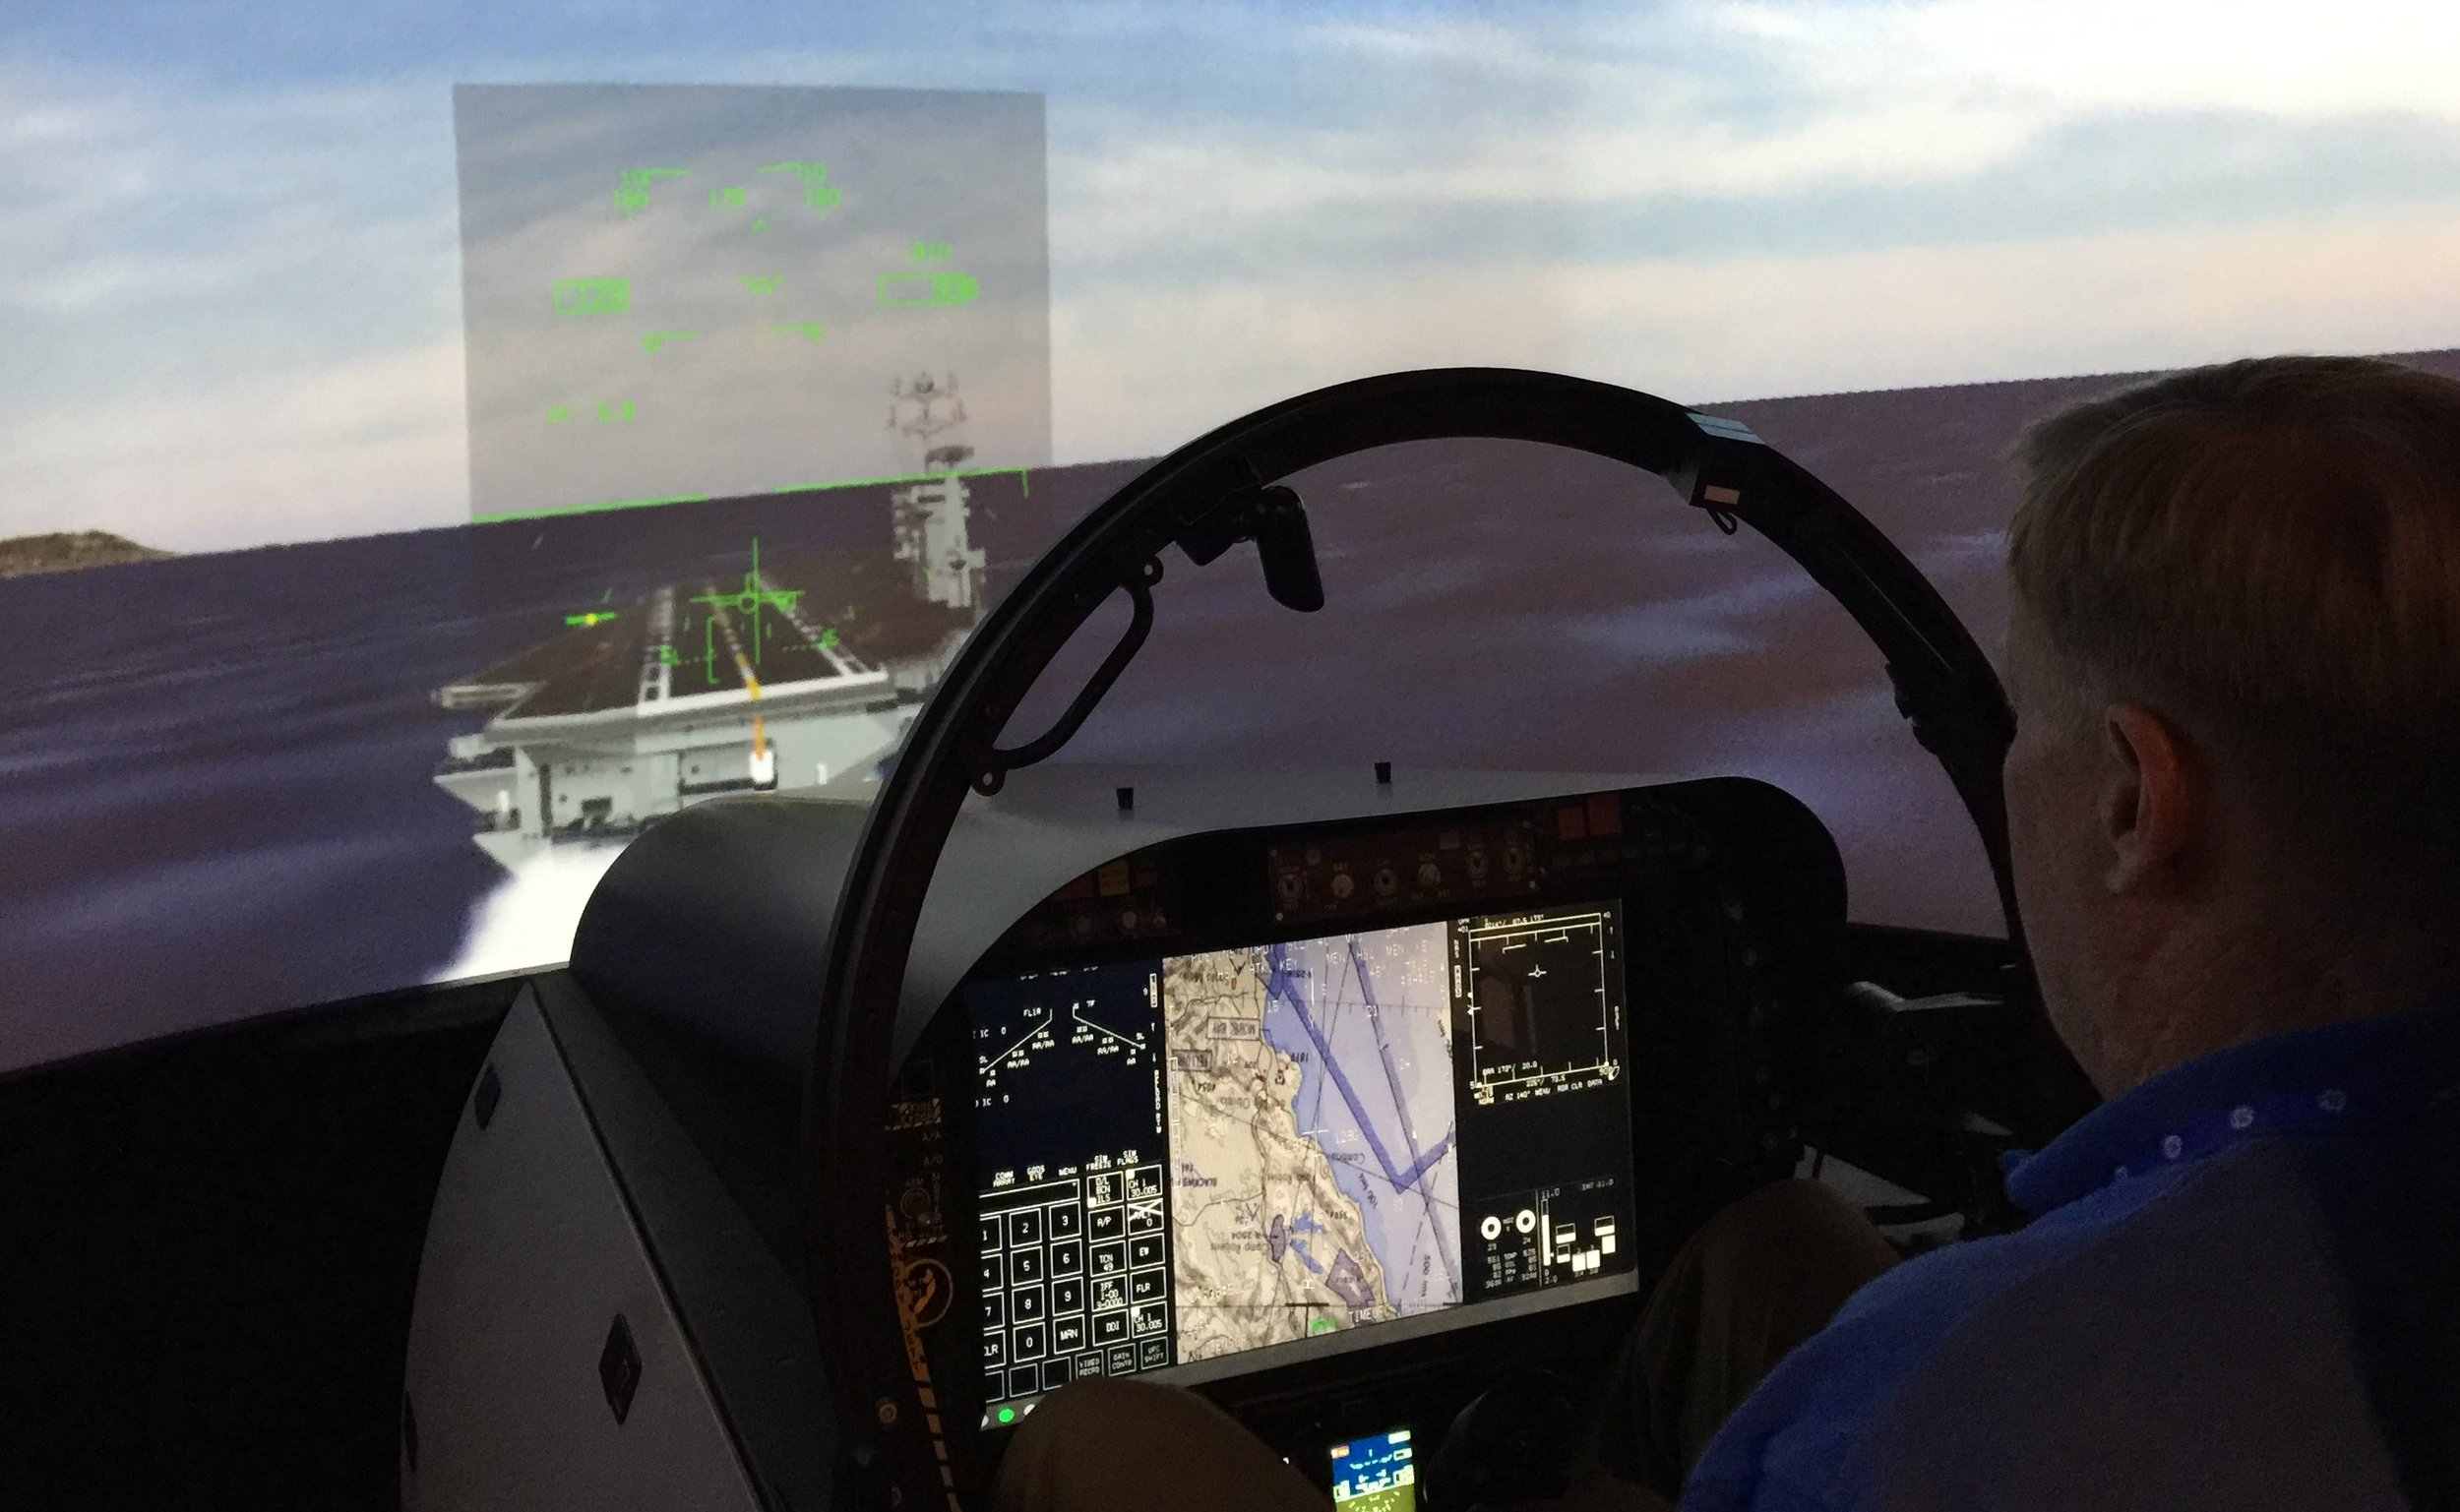 CoAspire's CEO and Founder Doug Denneny at TAILHOOK 2019 flying an F/A-18F Super Hornet aboard the carrier. Case 1 straight in, wind down the angle, stable deck, great HUD, no excuses not to have a center ball!